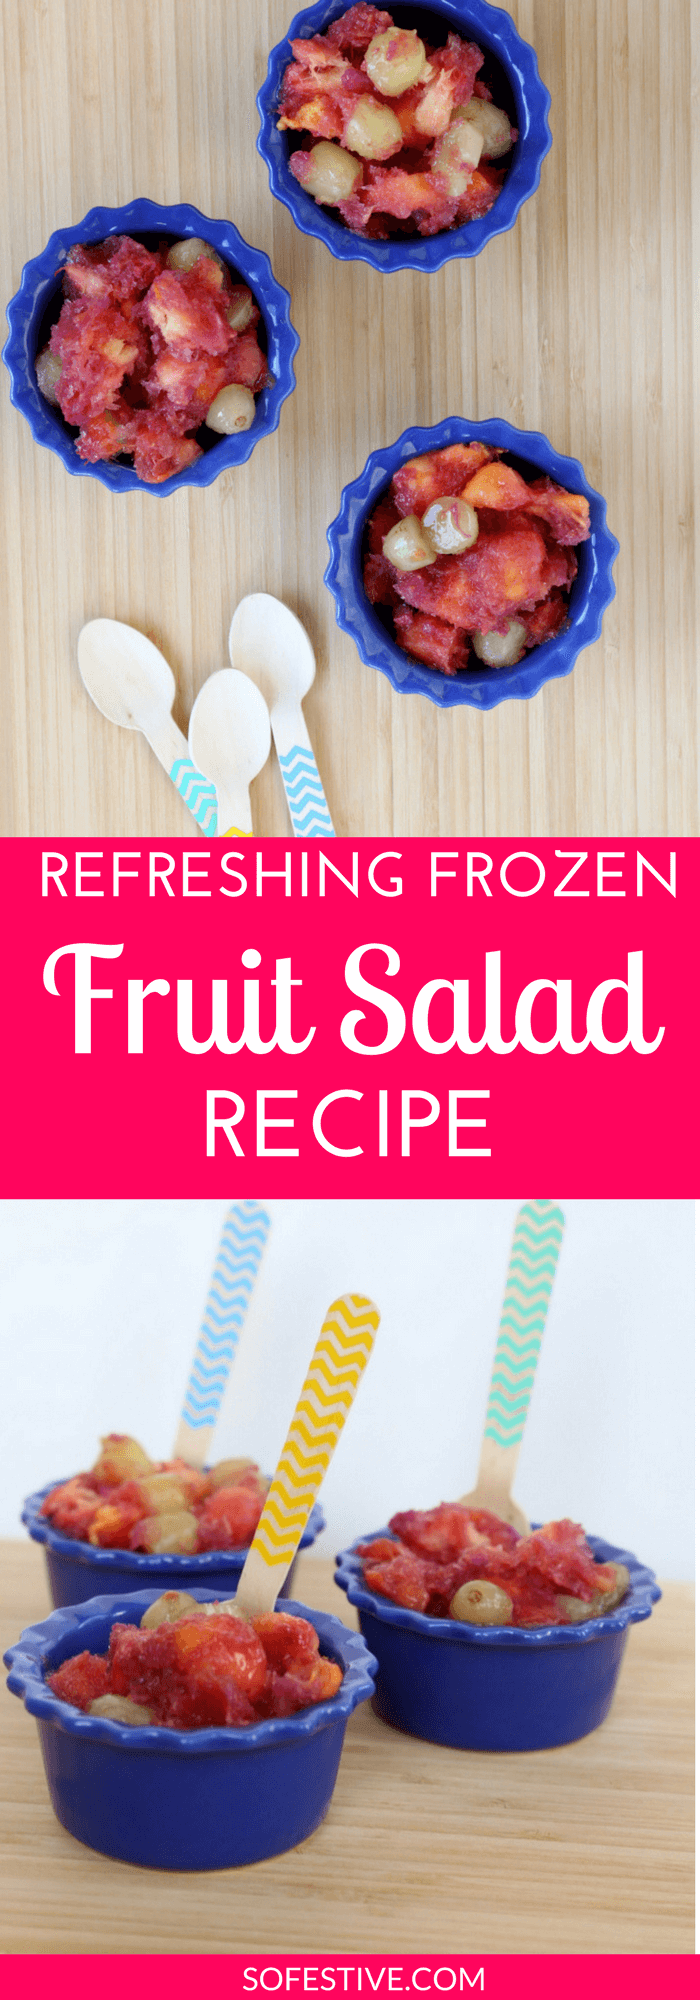 Simple and Refreshing Frozen Fruit Salad Recipe using fresh peaches-make a big batch now and enjoy fresh fruit all winter long